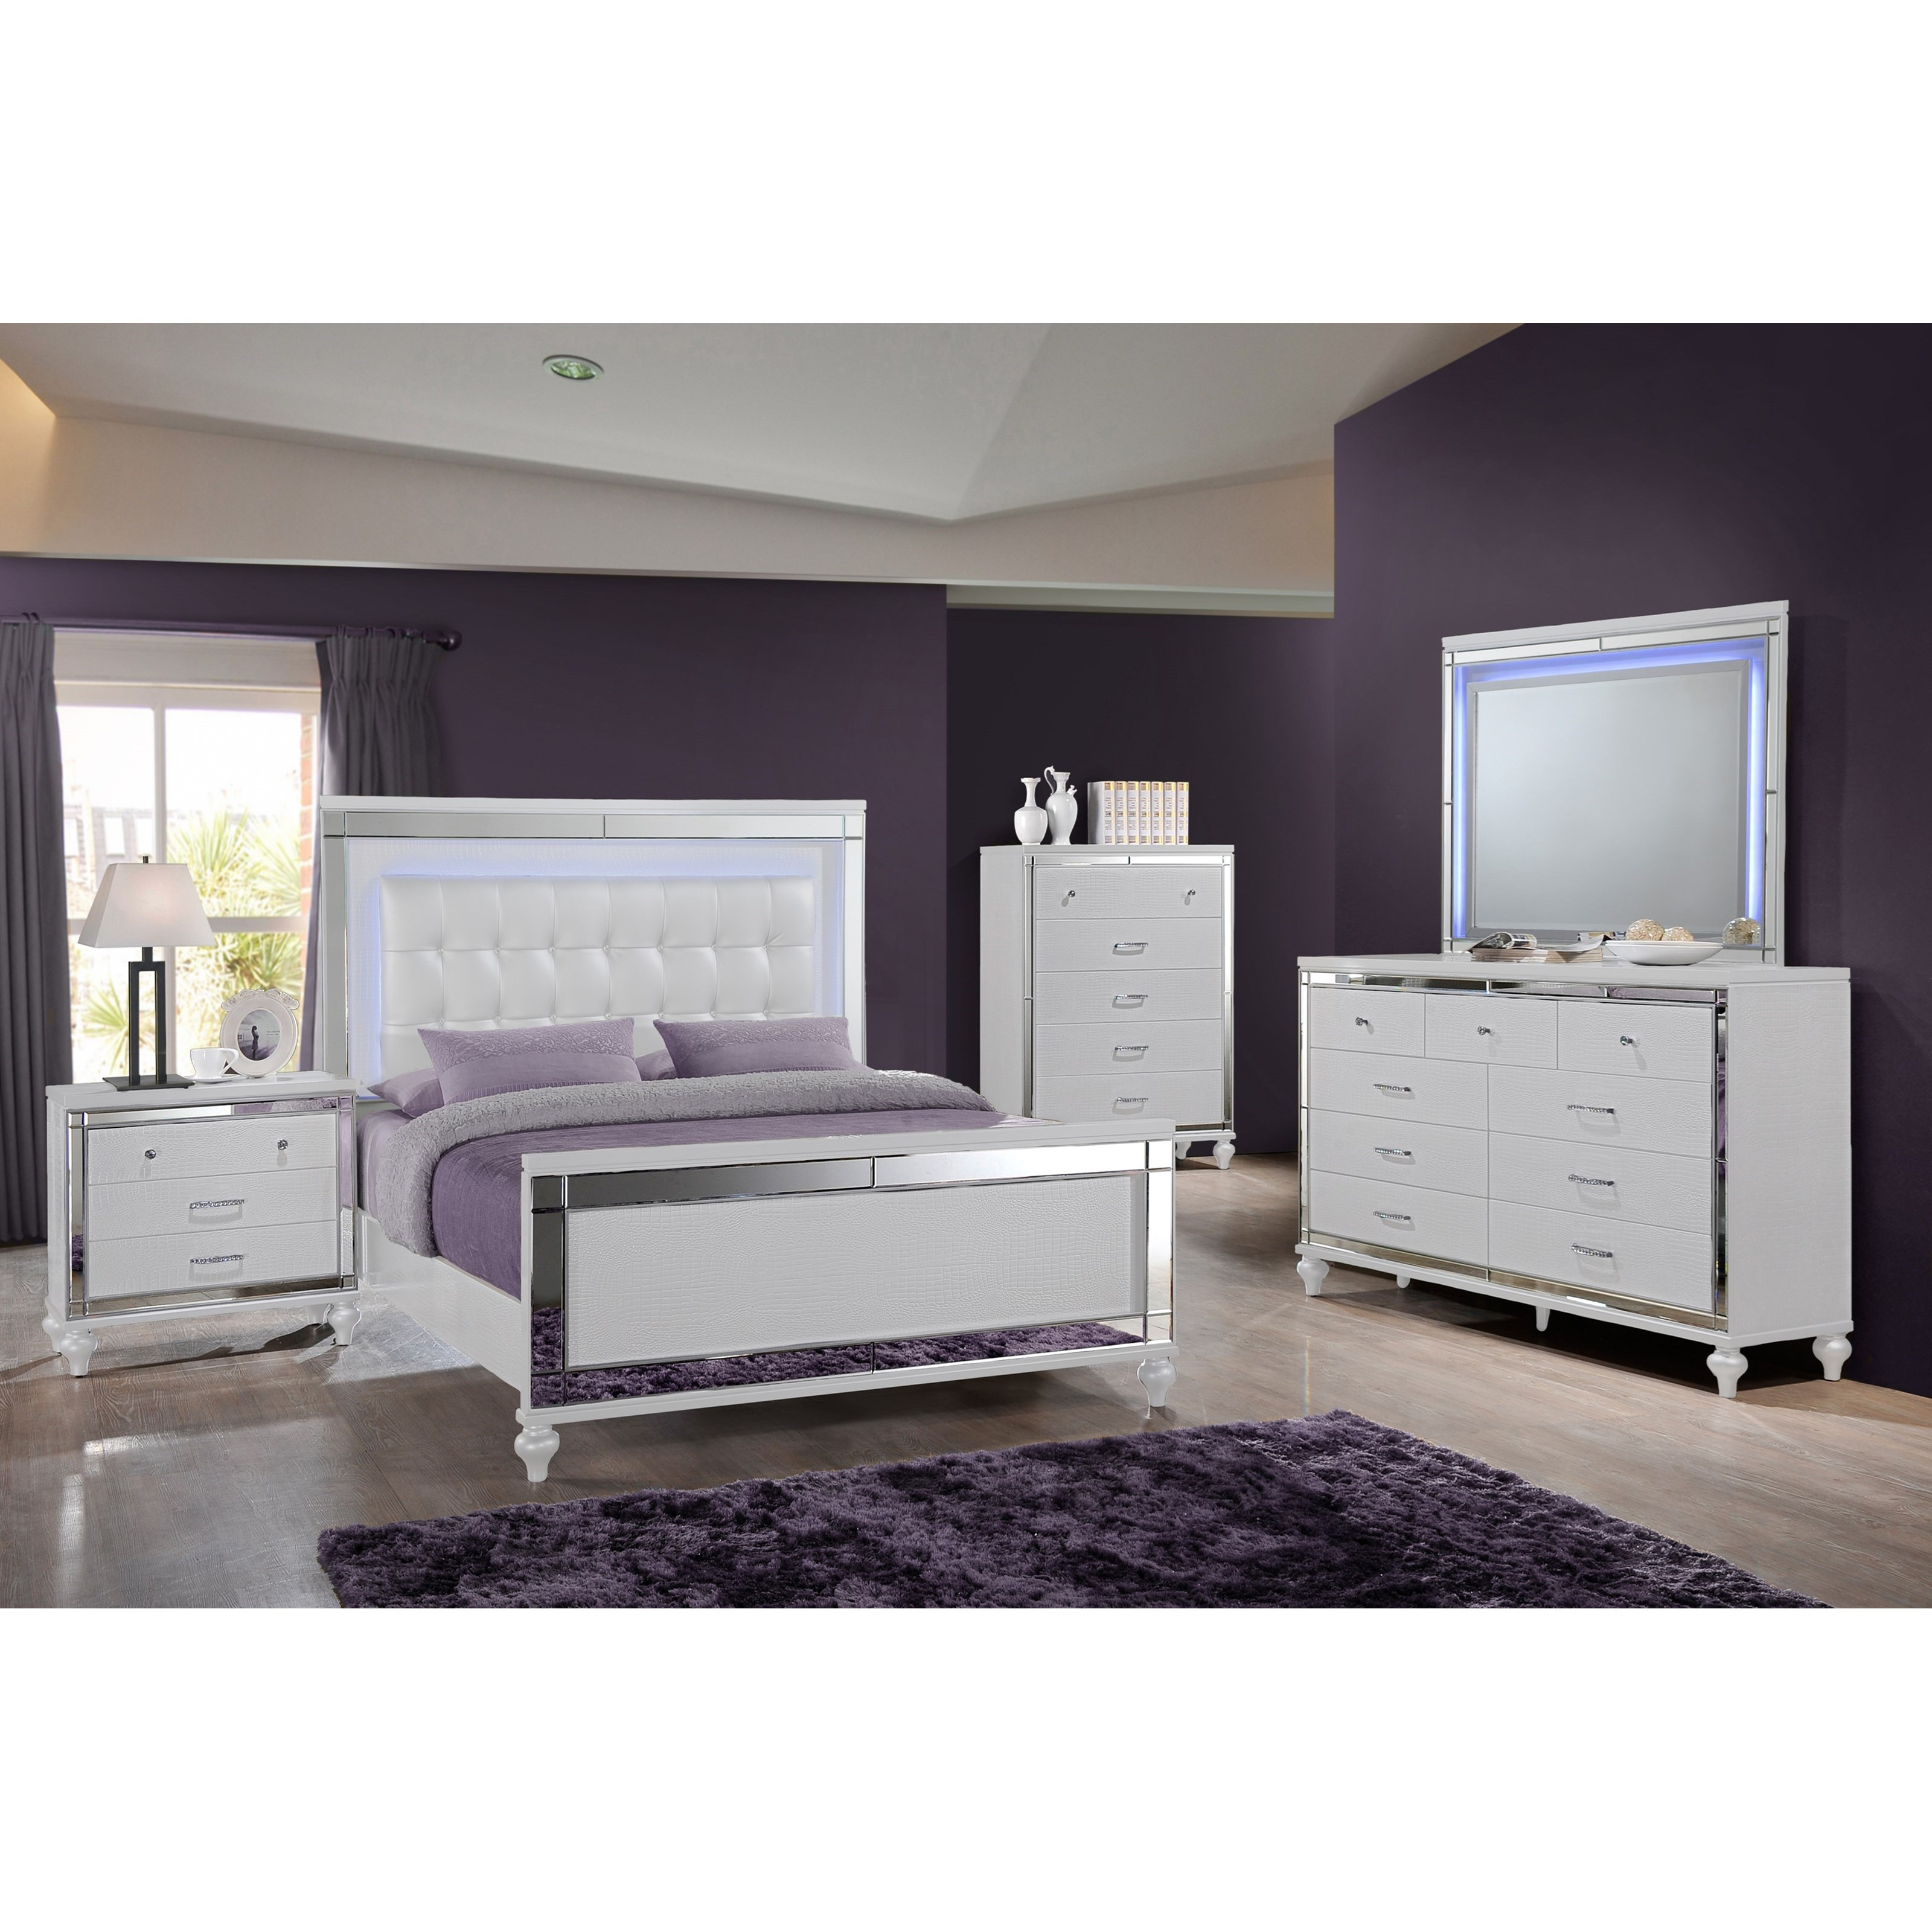 Valentino Queen Bedroom Group by New Classic at Beds N Stuff